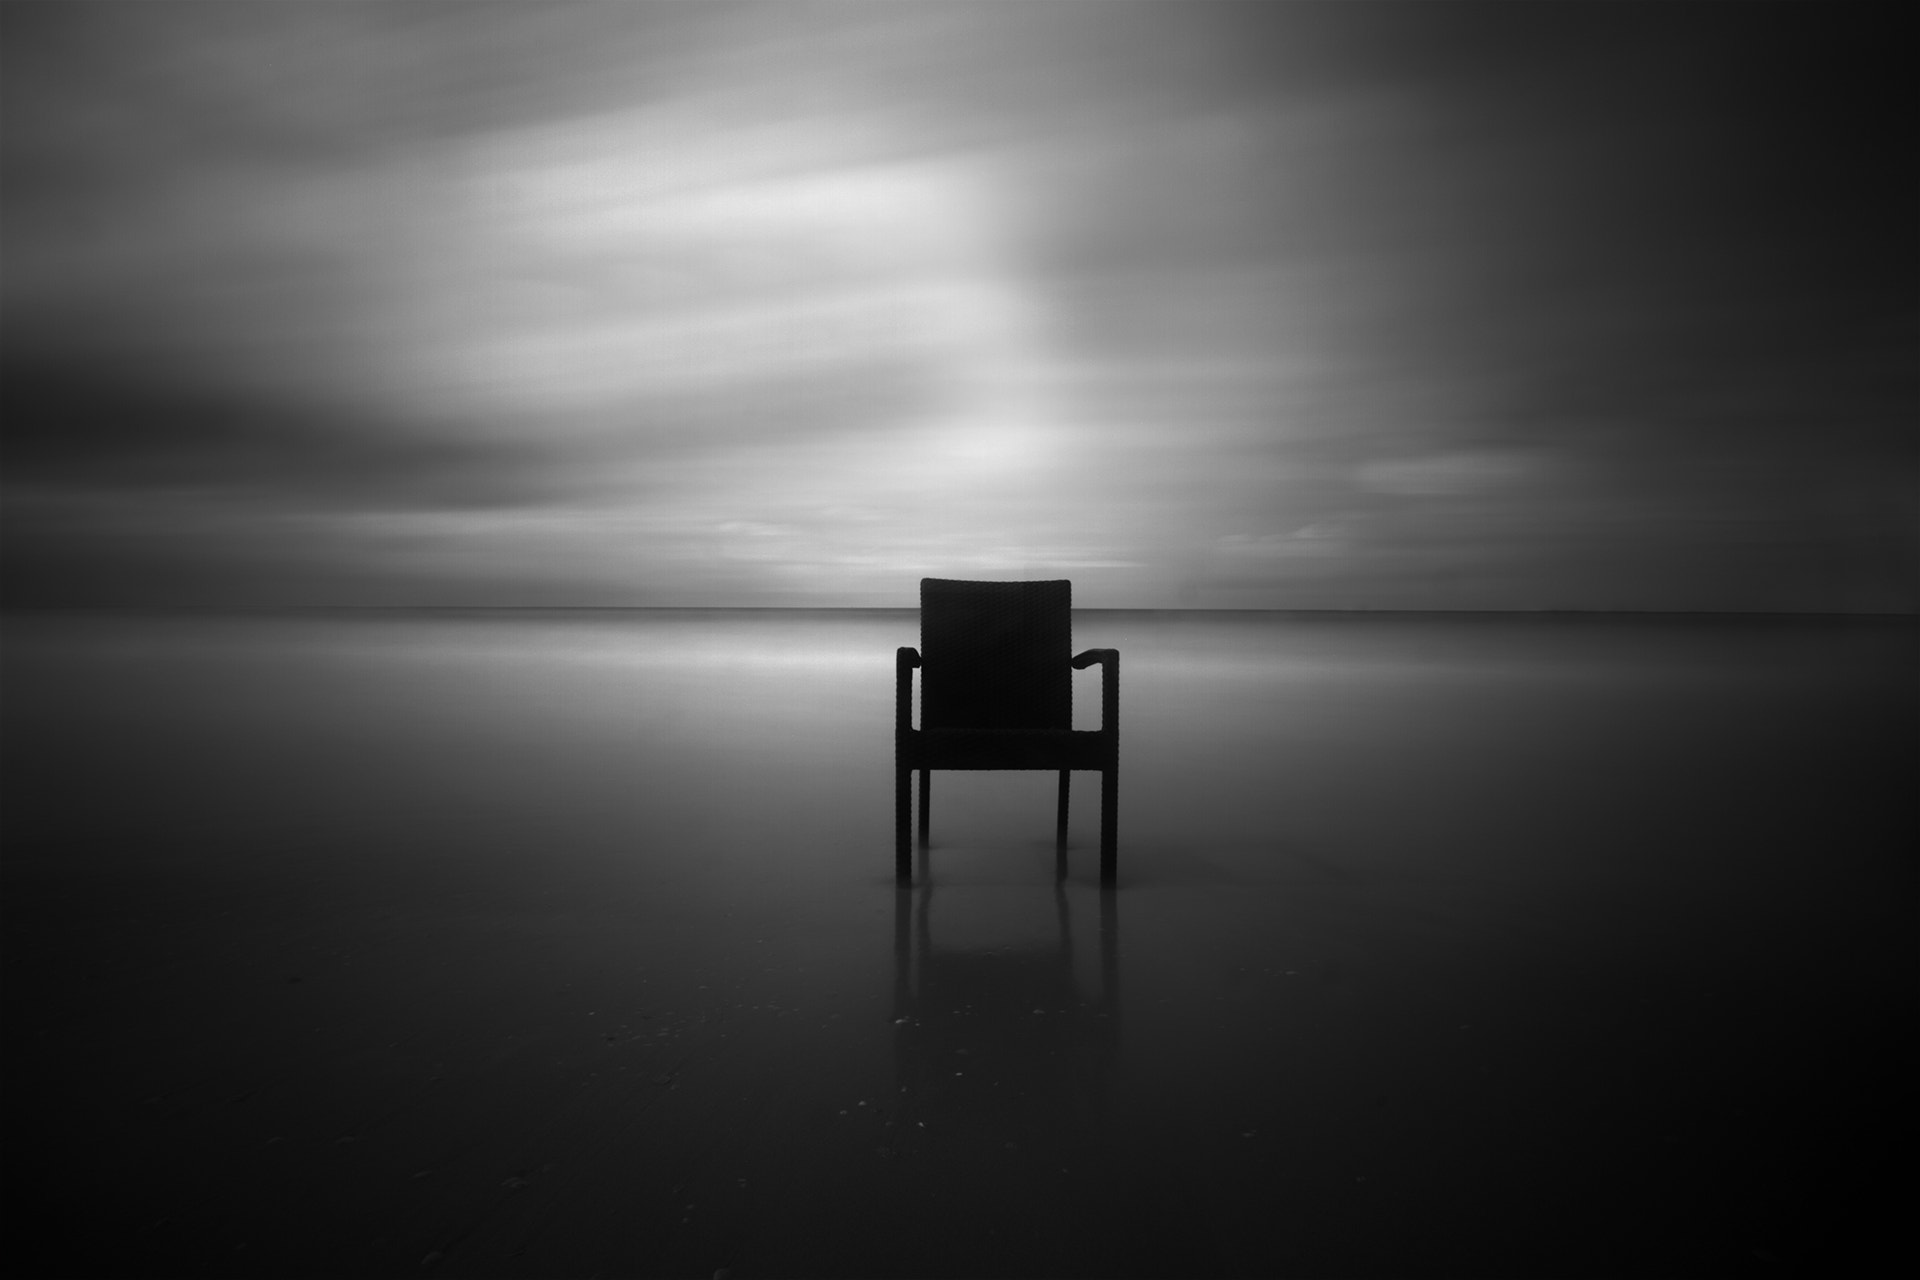 Photograph lonely III by Kees Smans on 500px